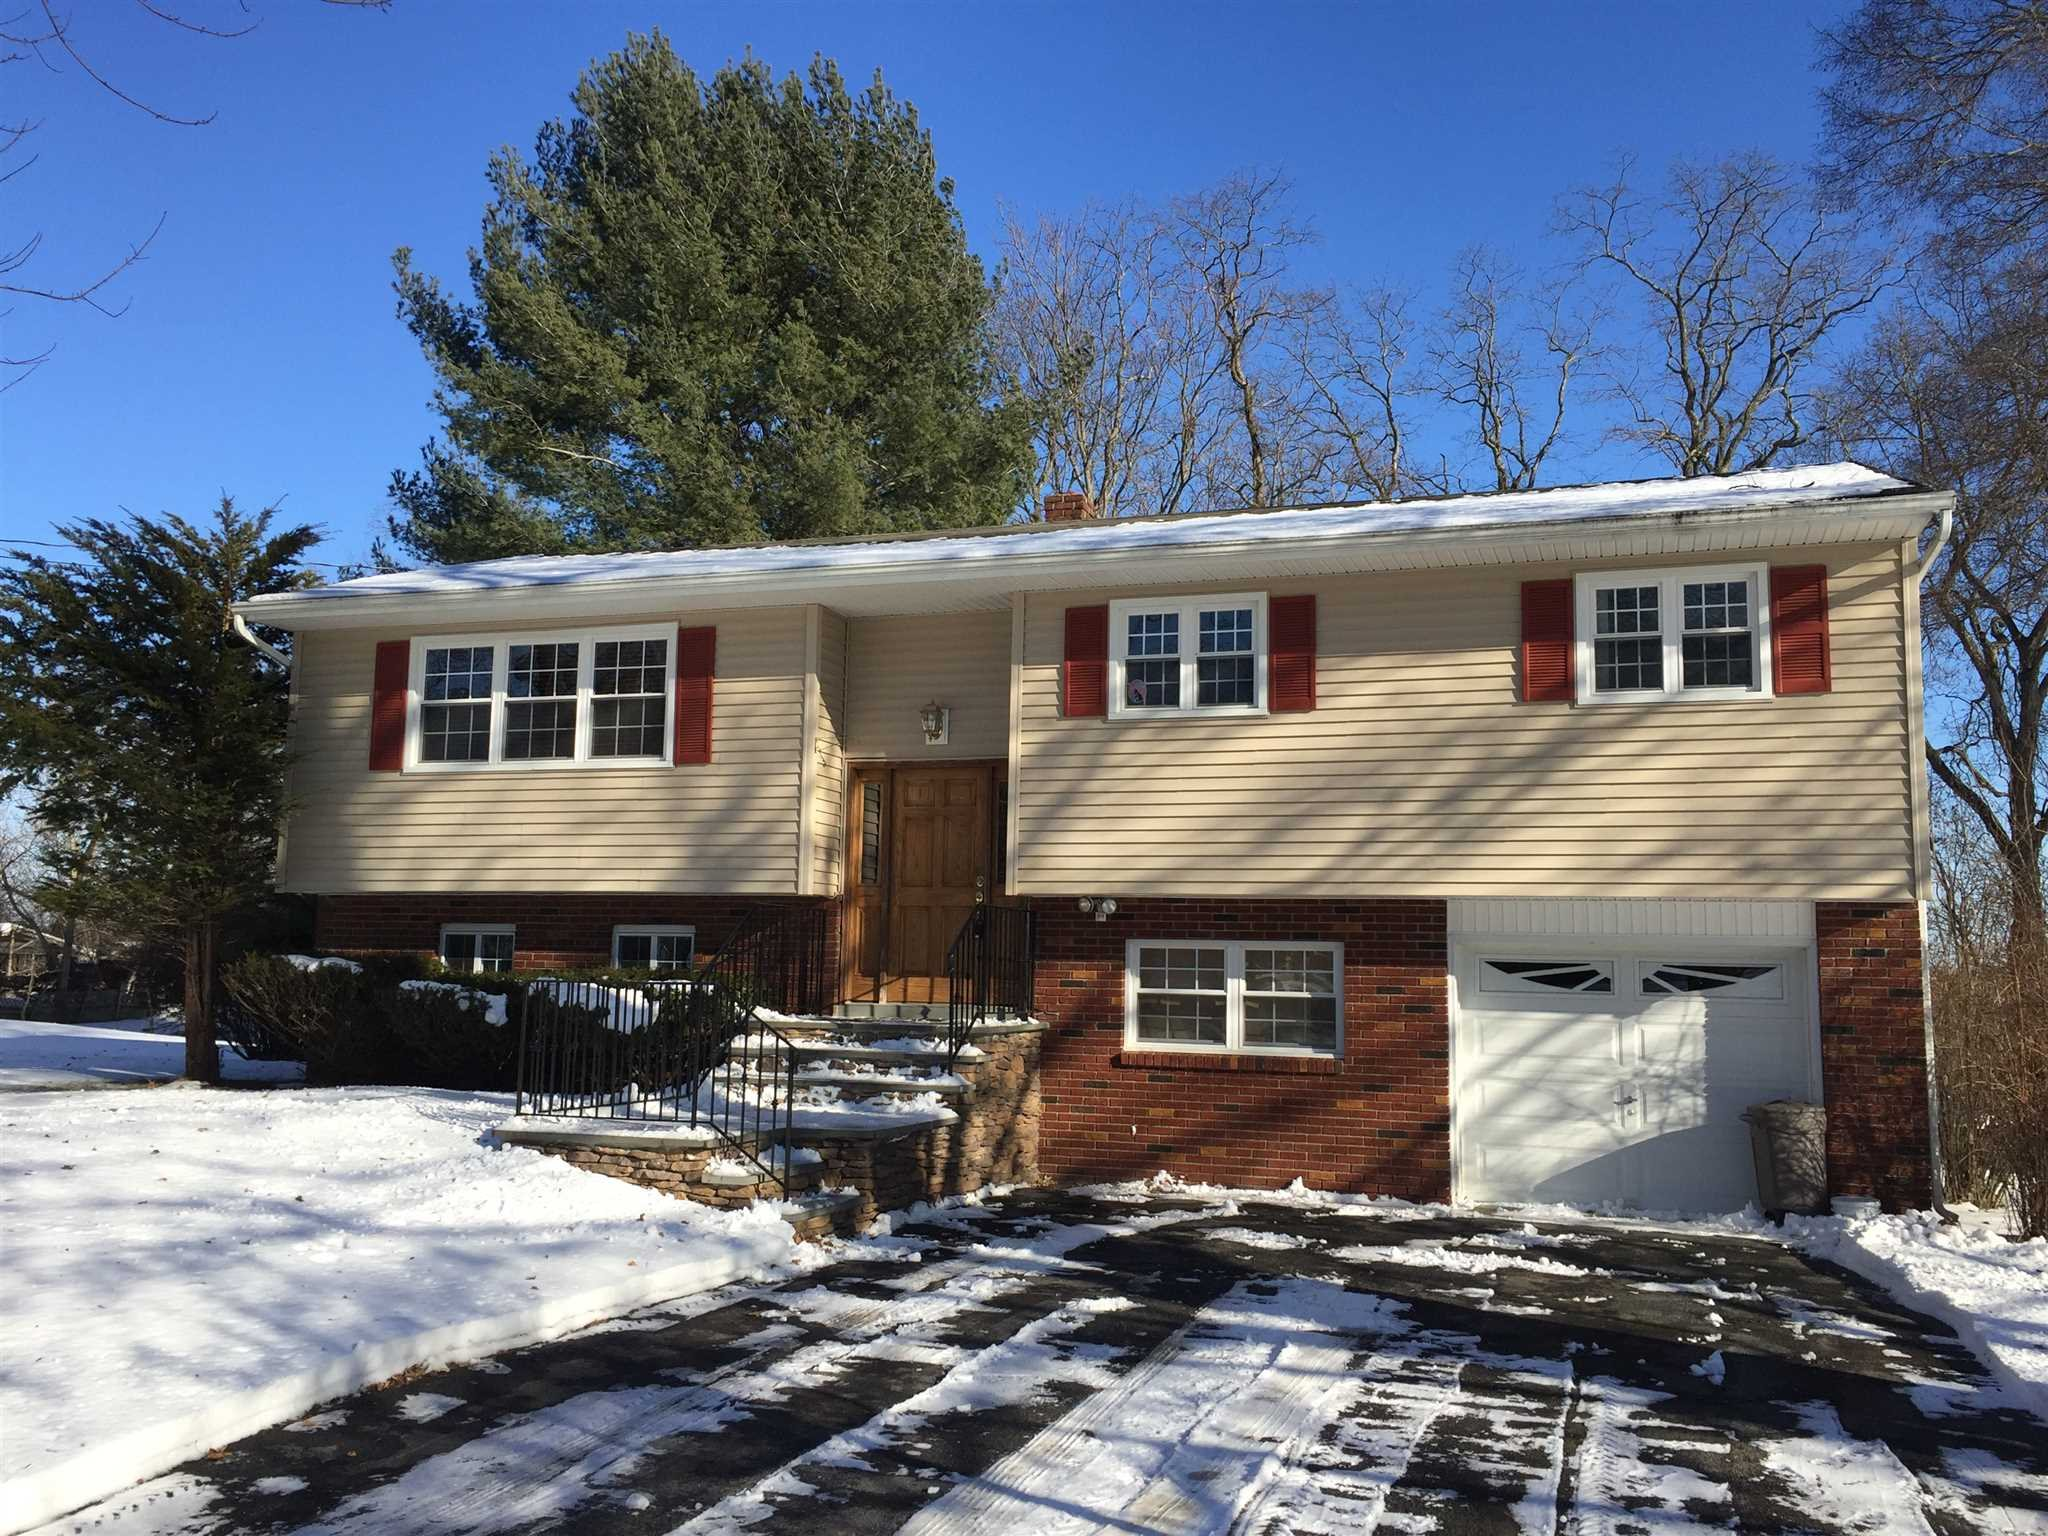 Single Family Home for Sale at 52 OVERLOOK 52 OVERLOOK Red Hook, New York 12572 United States